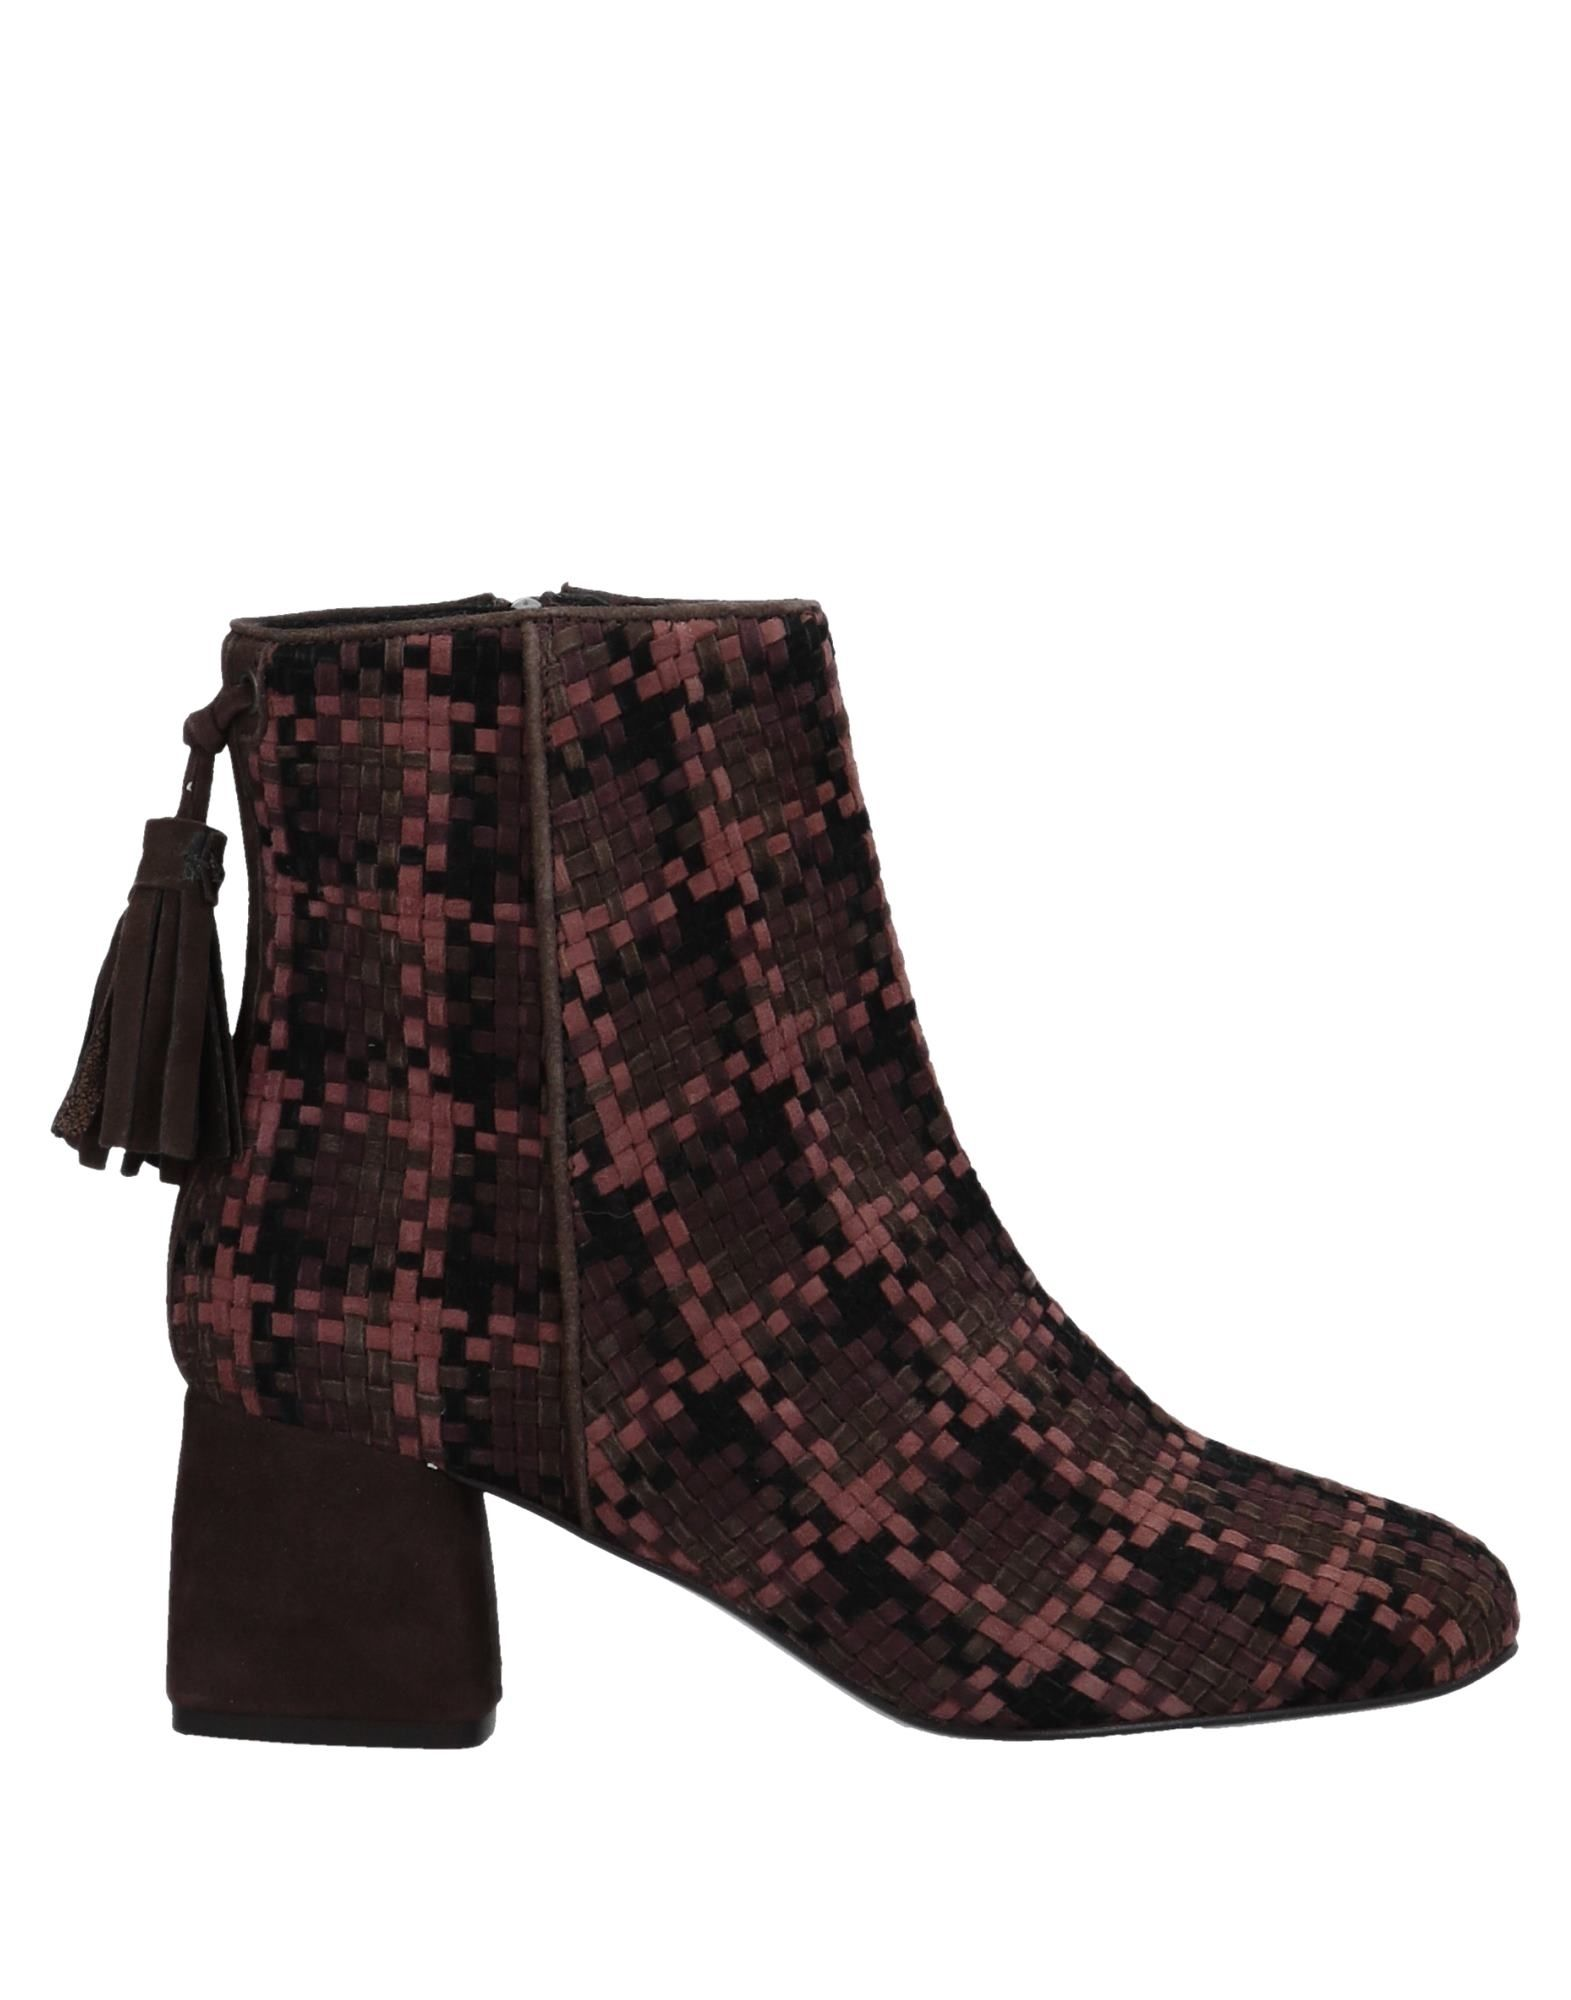 Pons Quintana Ankle Boot - Women Pons on Quintana Ankle Boots online on Pons  United Kingdom - 11518103RL a26f28